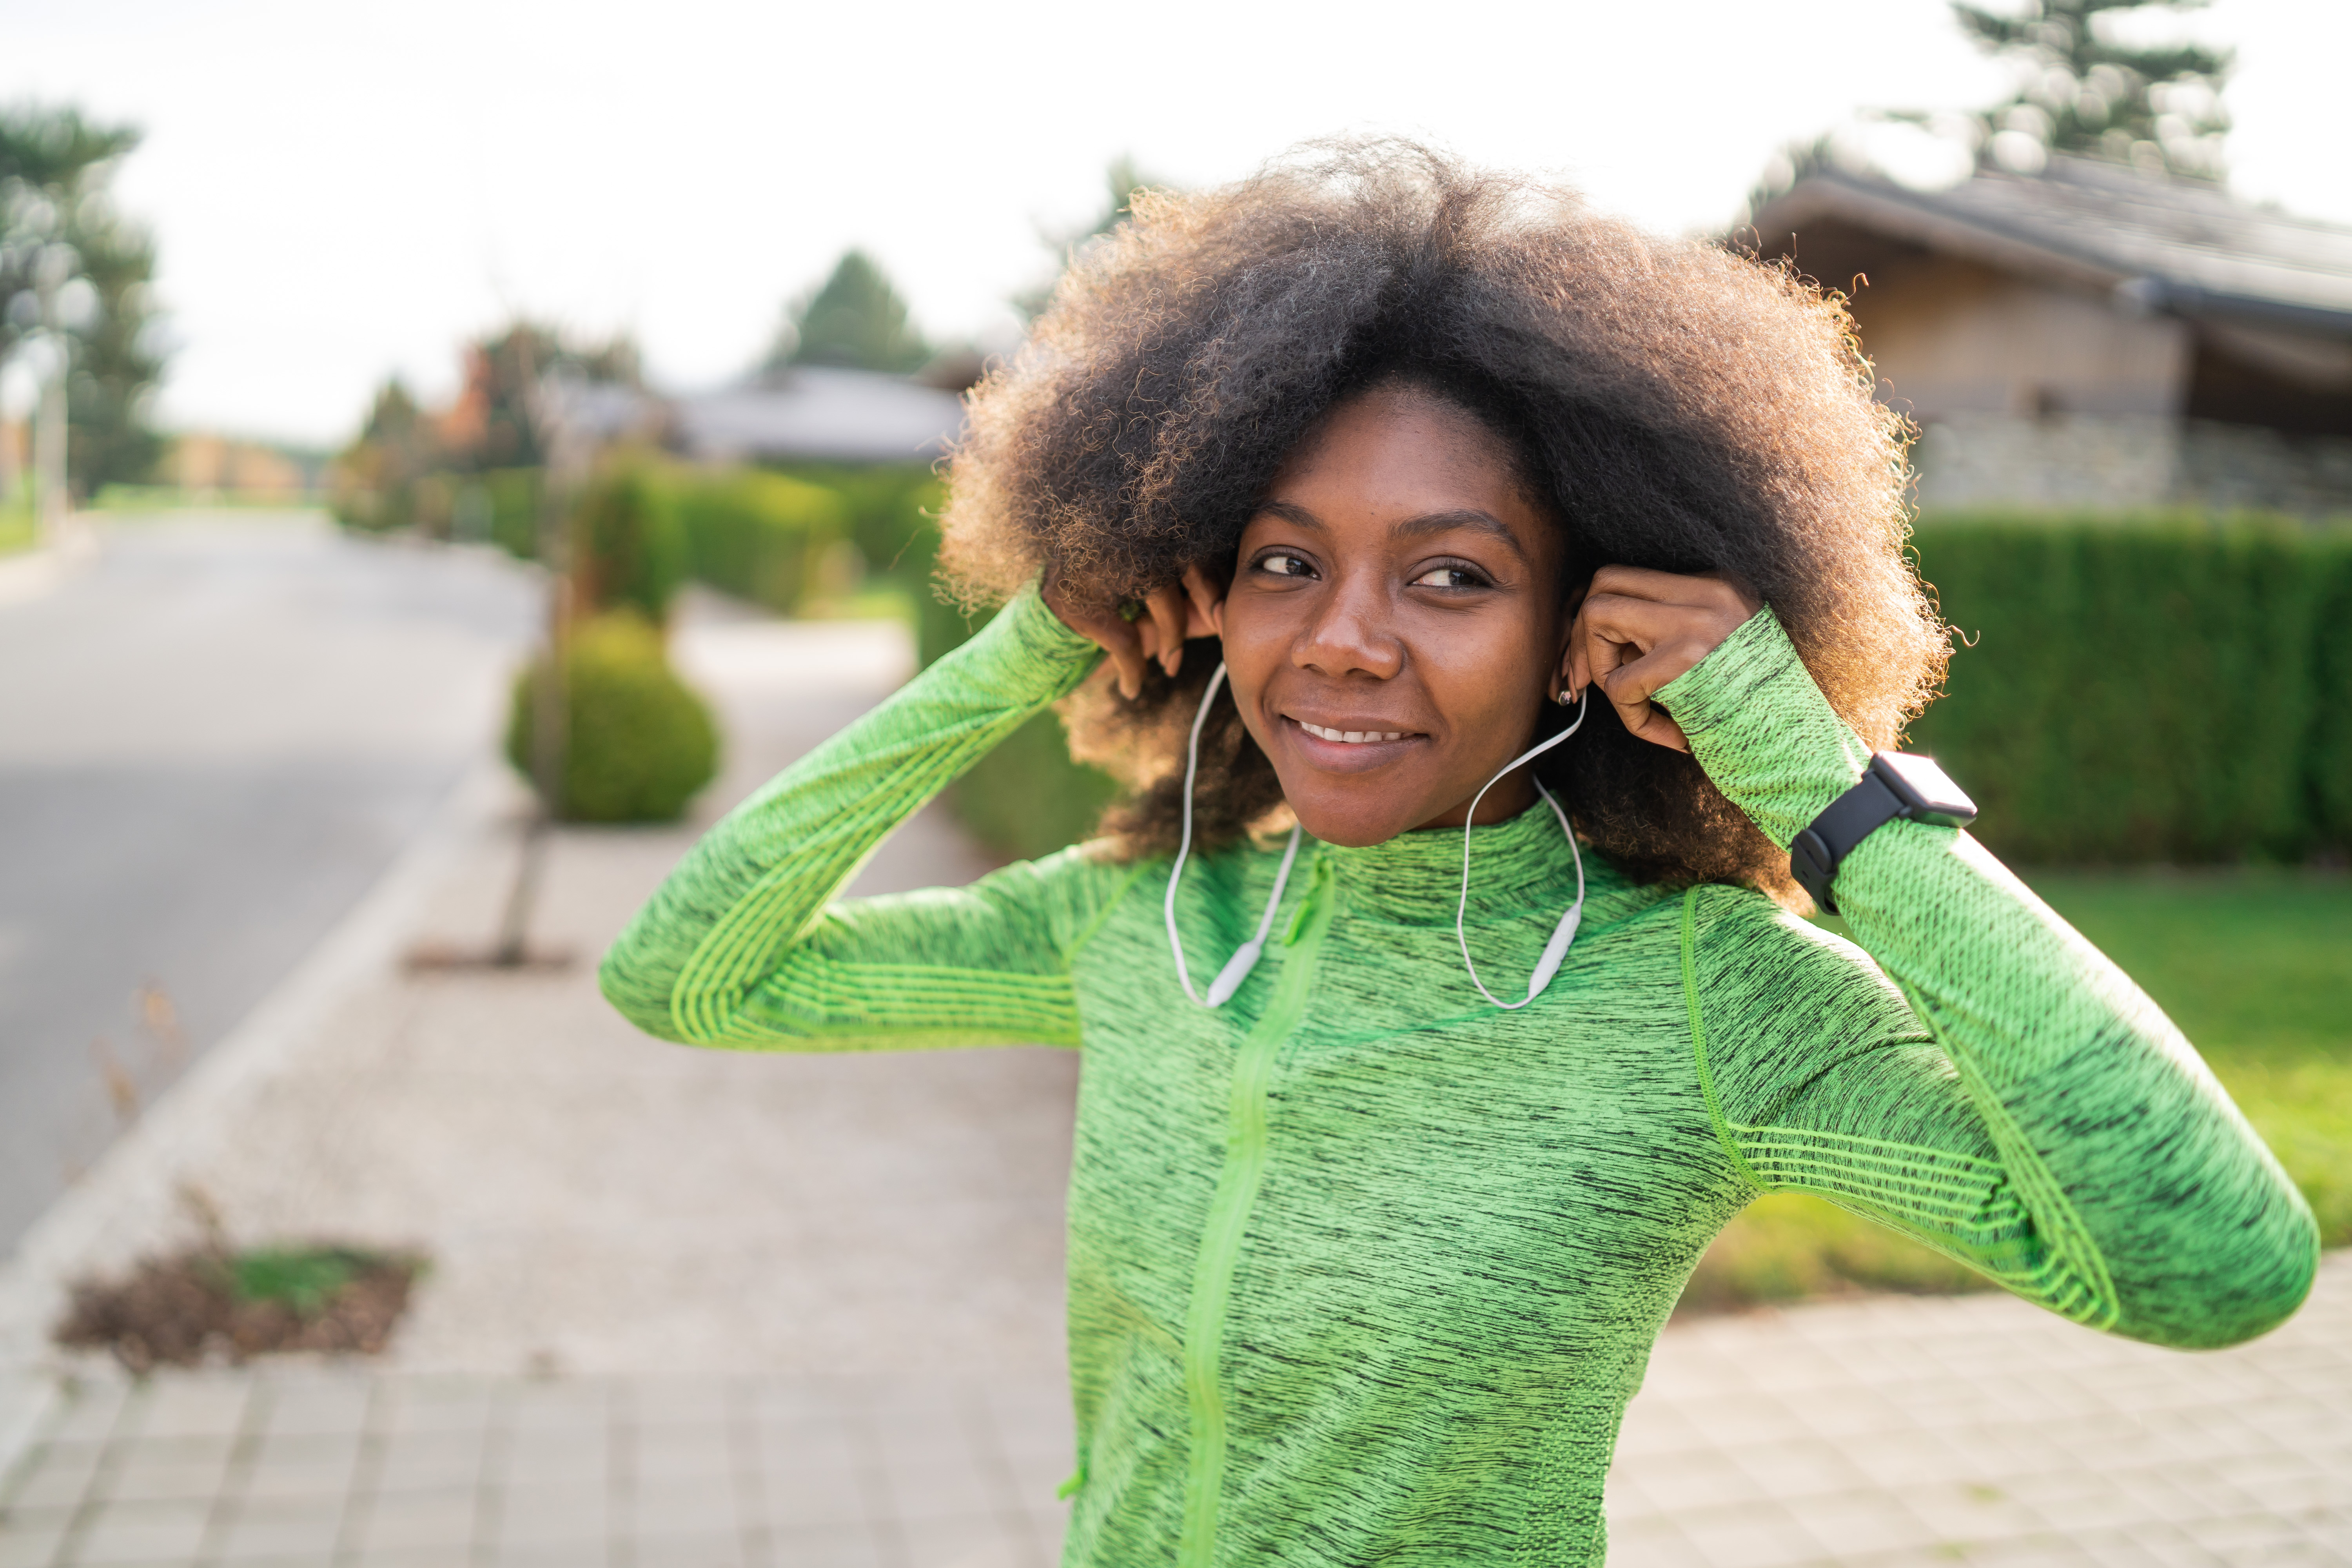 Smiling Green Afro